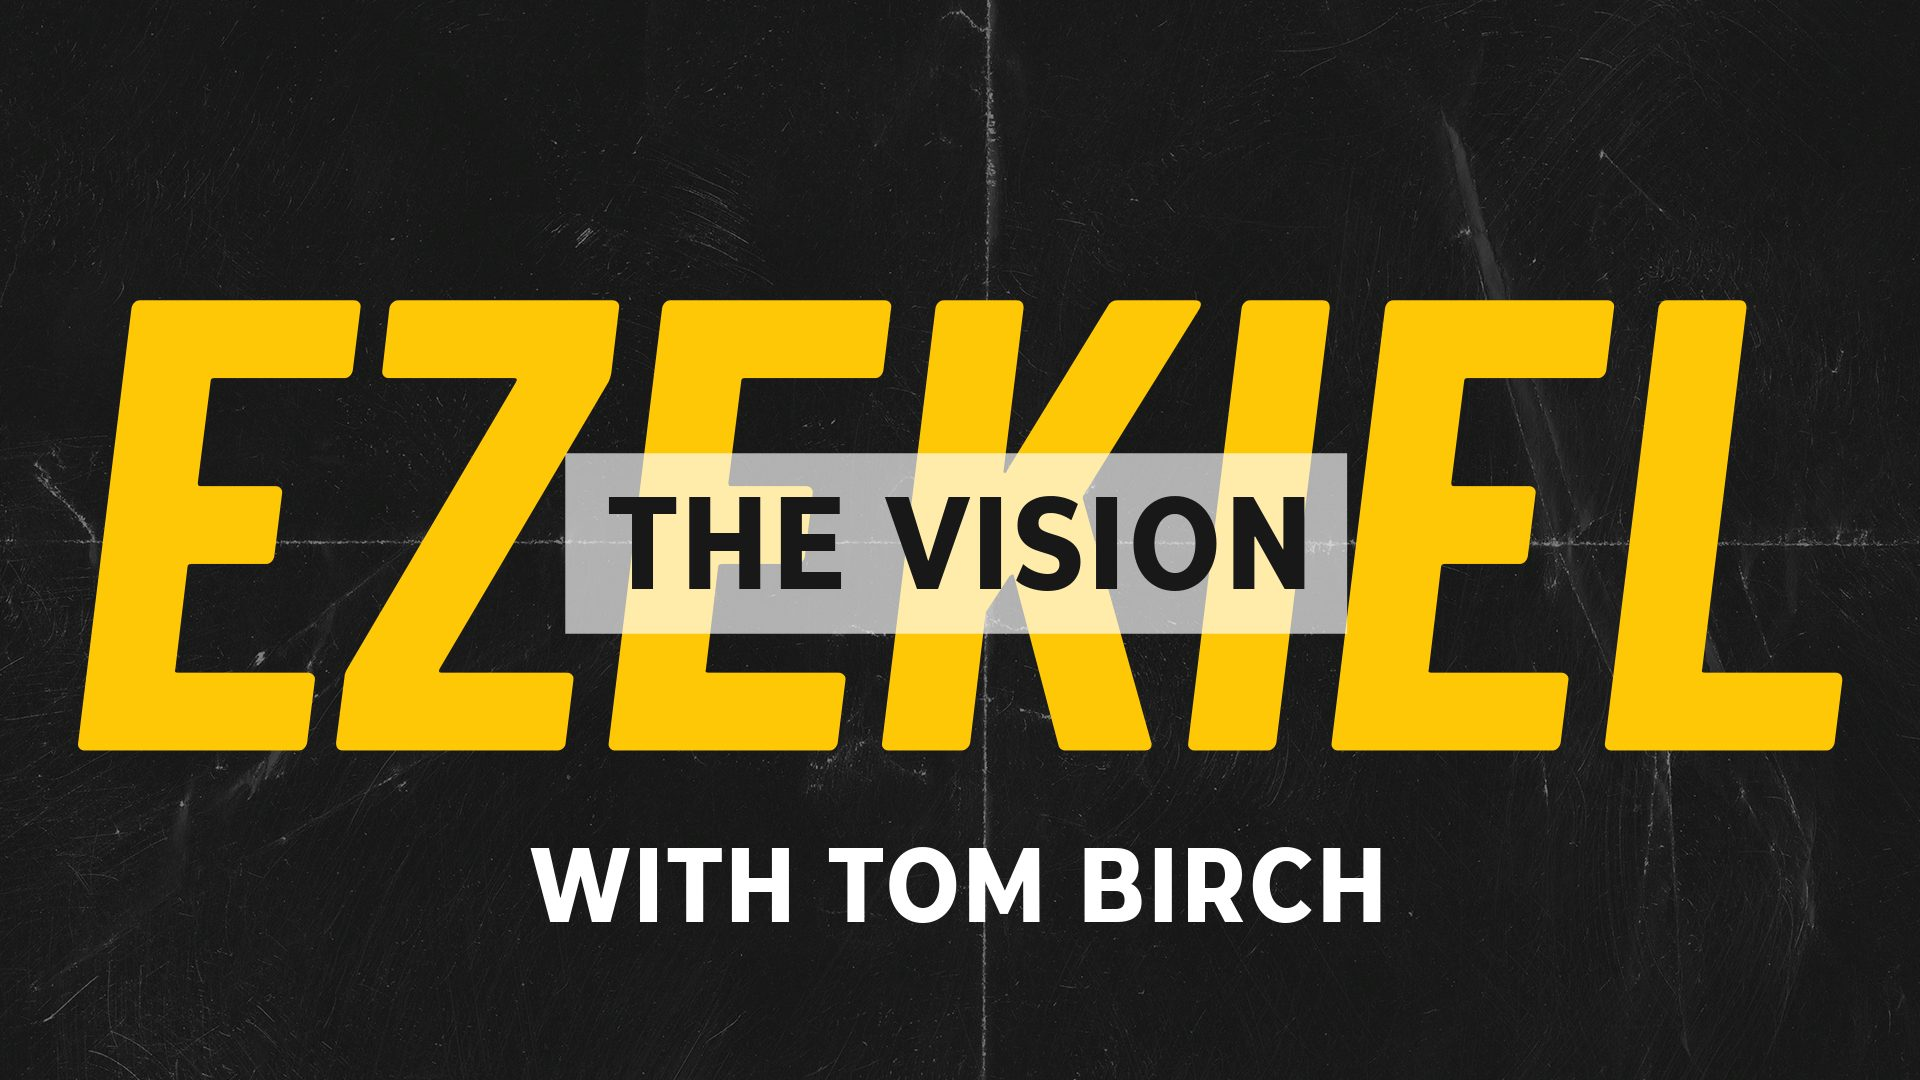 Ezekiel - The Vision